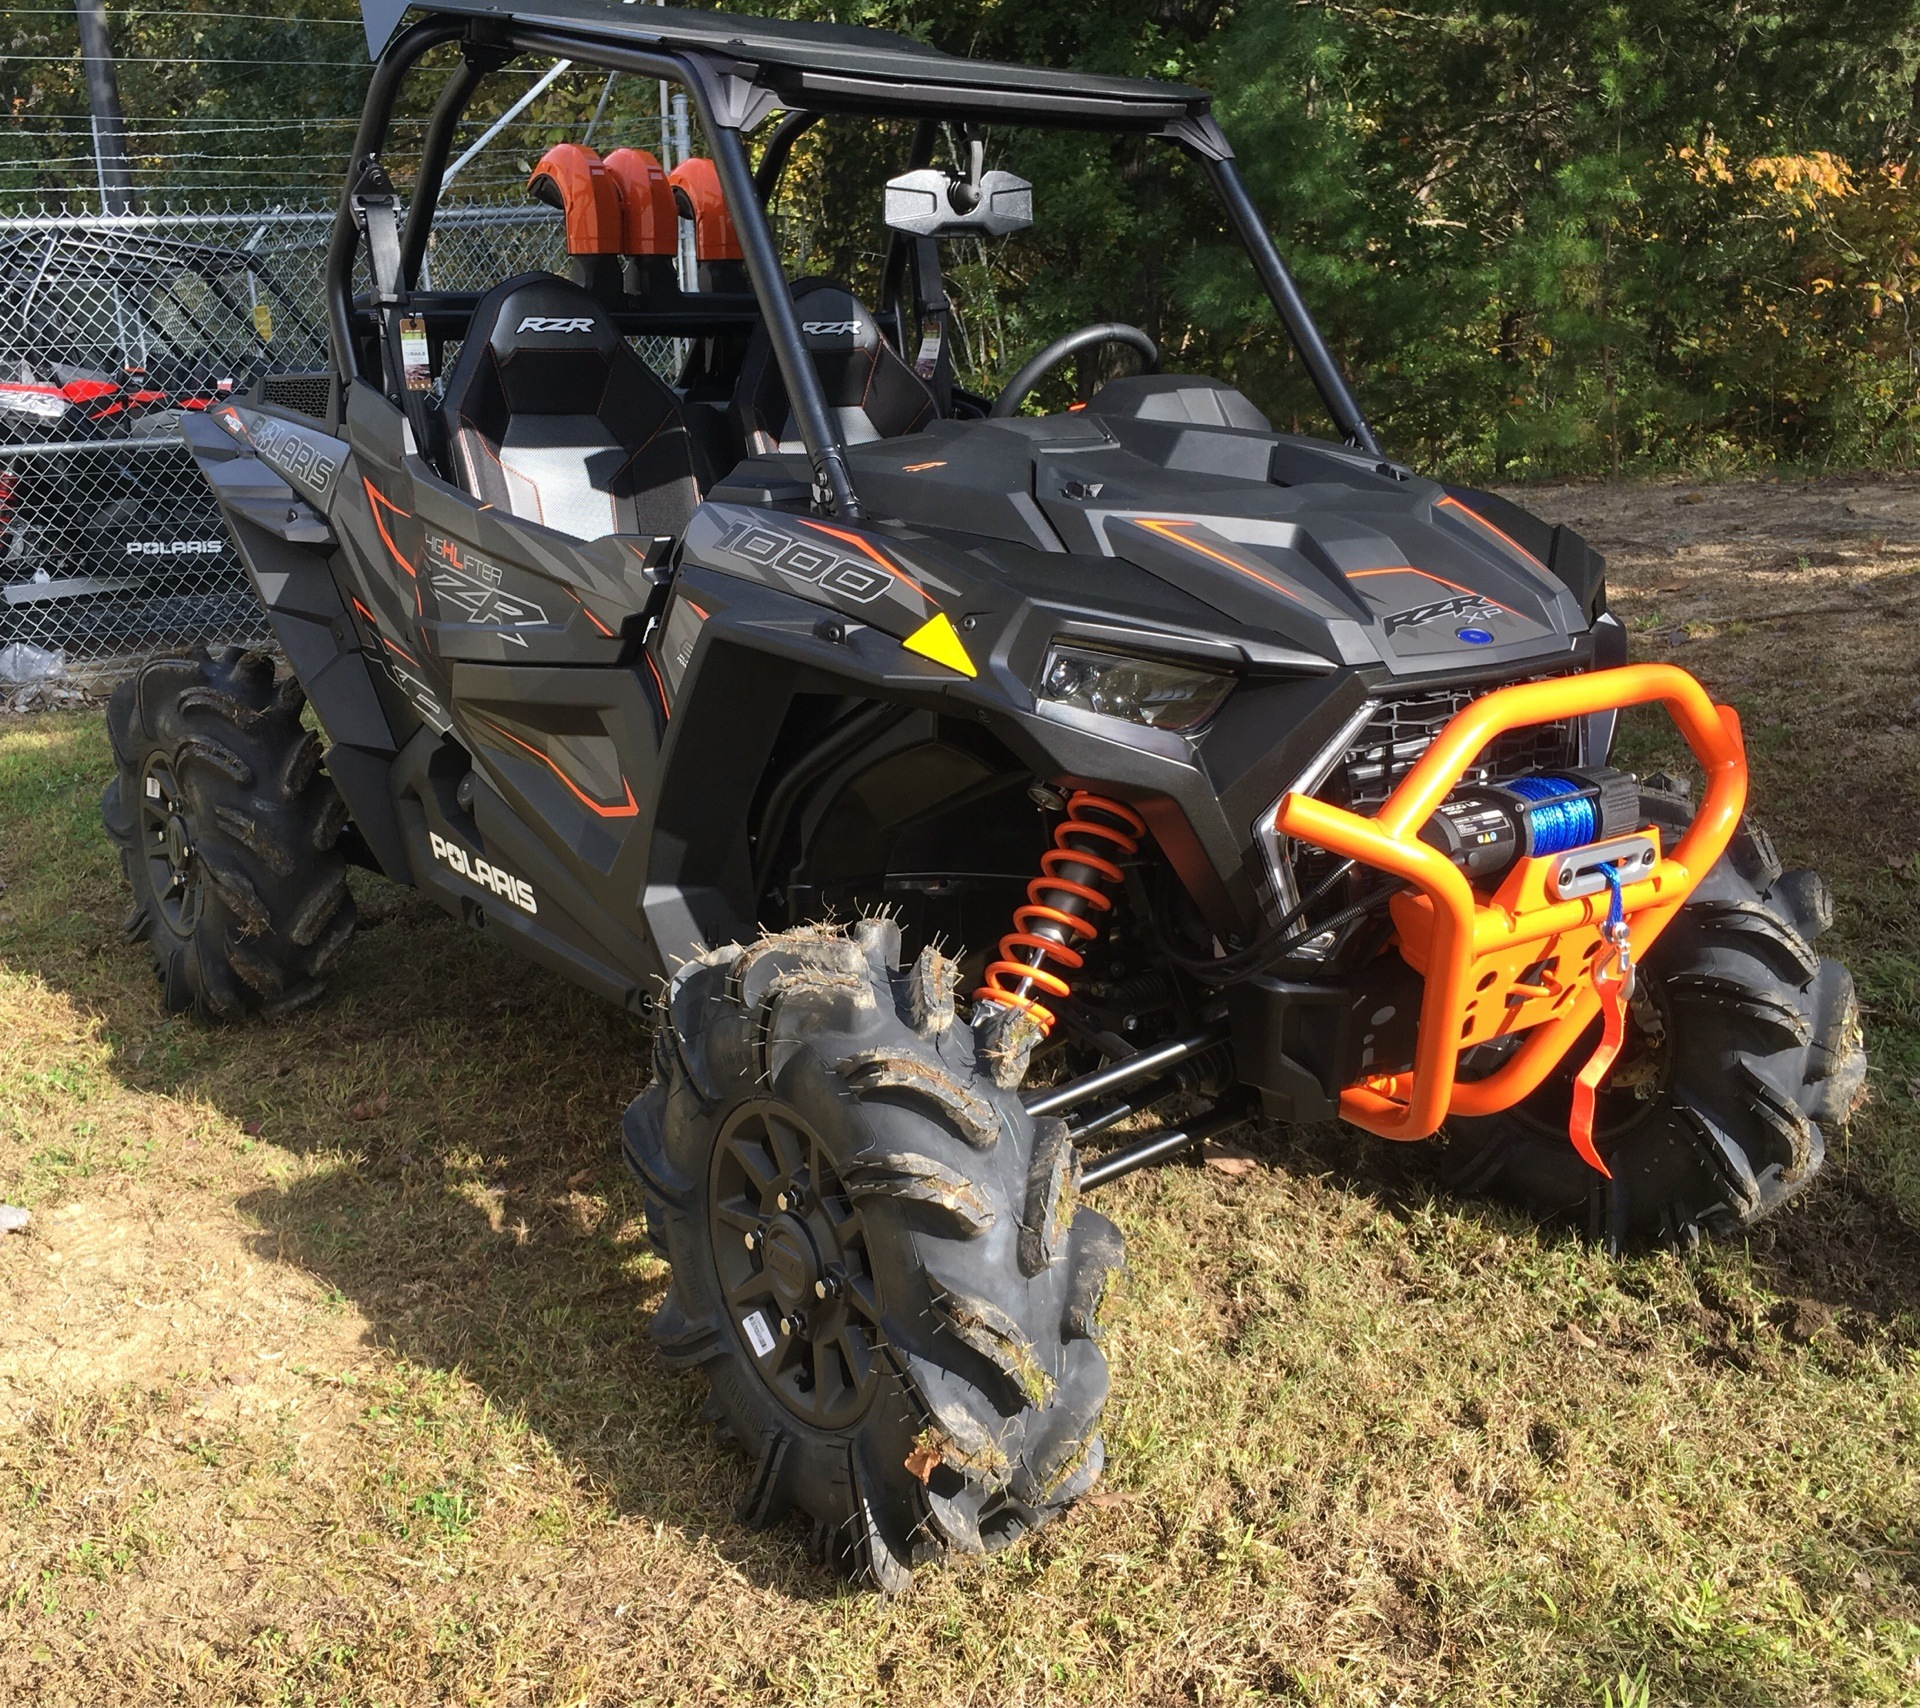 2019 Polaris Rzr Xp 1000 High Lifter In Point North Carolina Photo 1